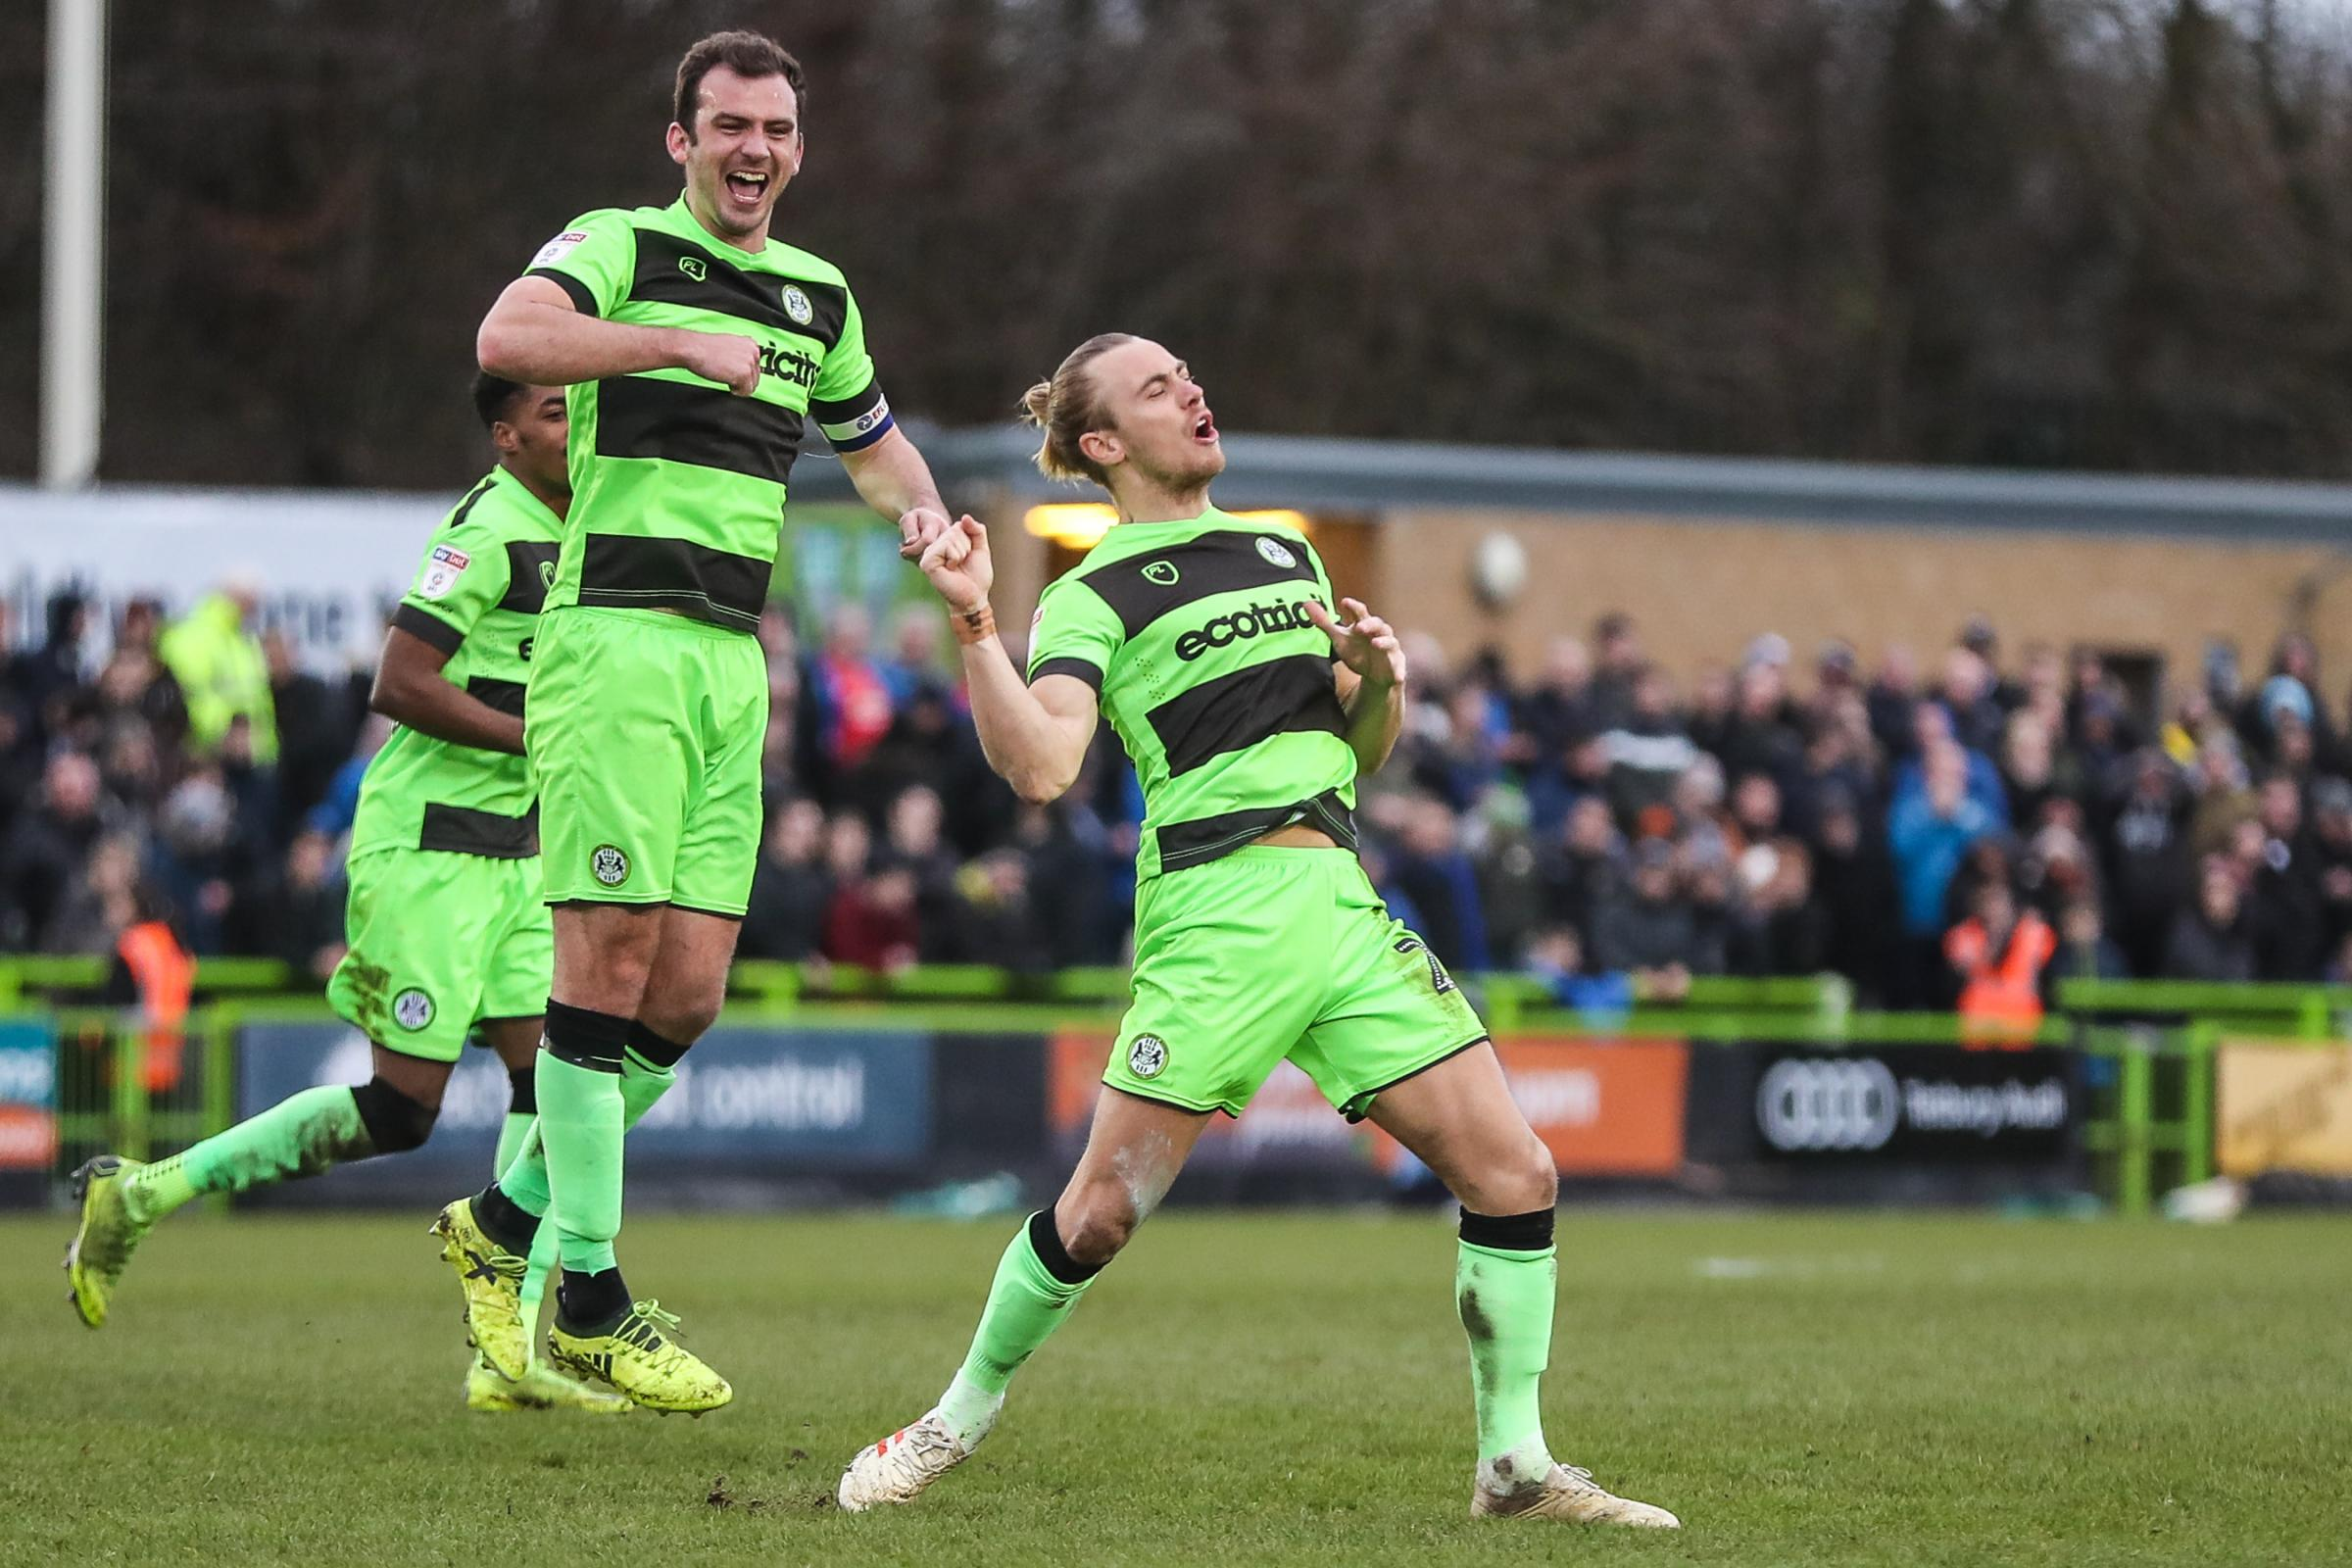 FULL-TIME:  Forest Green 1 Notts County 2  Basement- boys Notts County rock Rovers